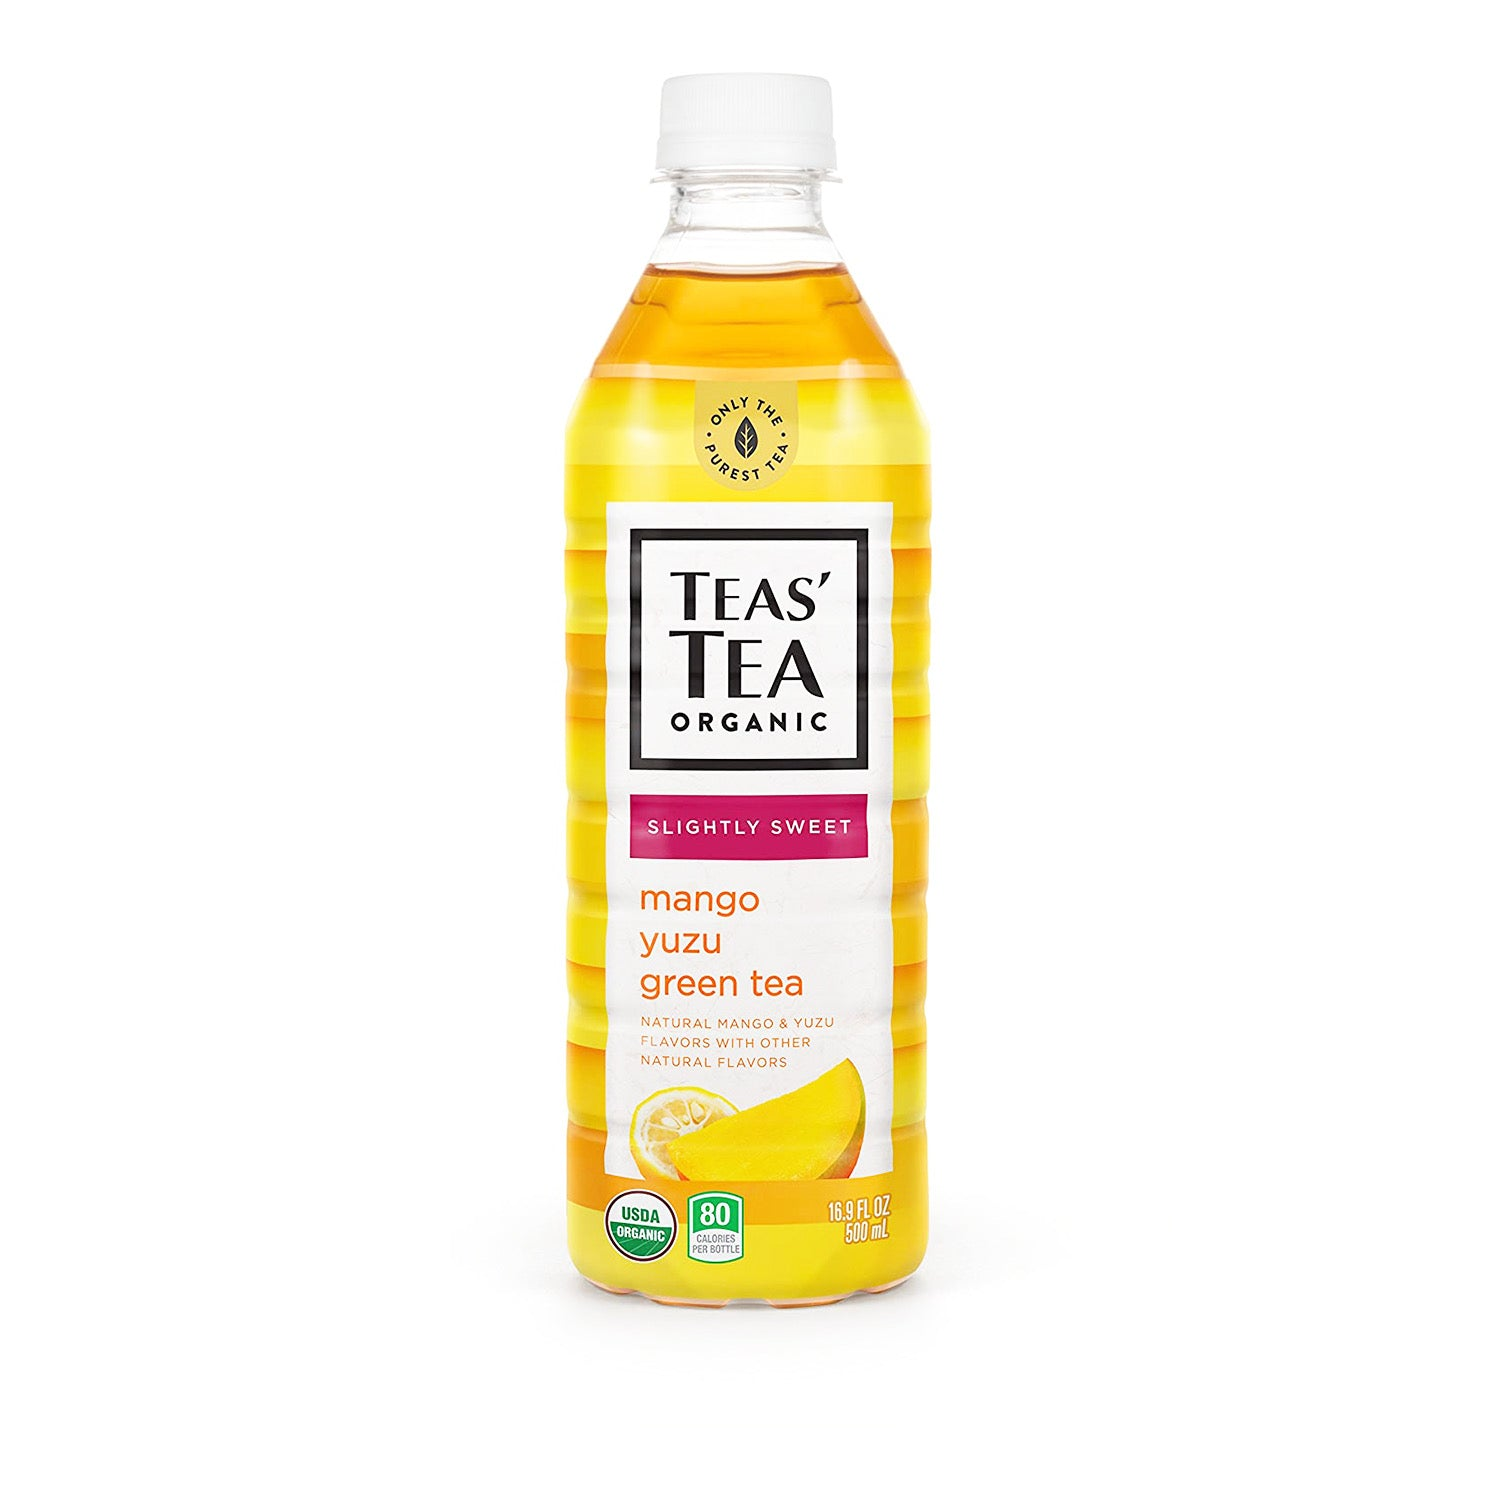 Teas' Tea Organic Iced Tea Mango Yuzu Green Tea 16.9oz